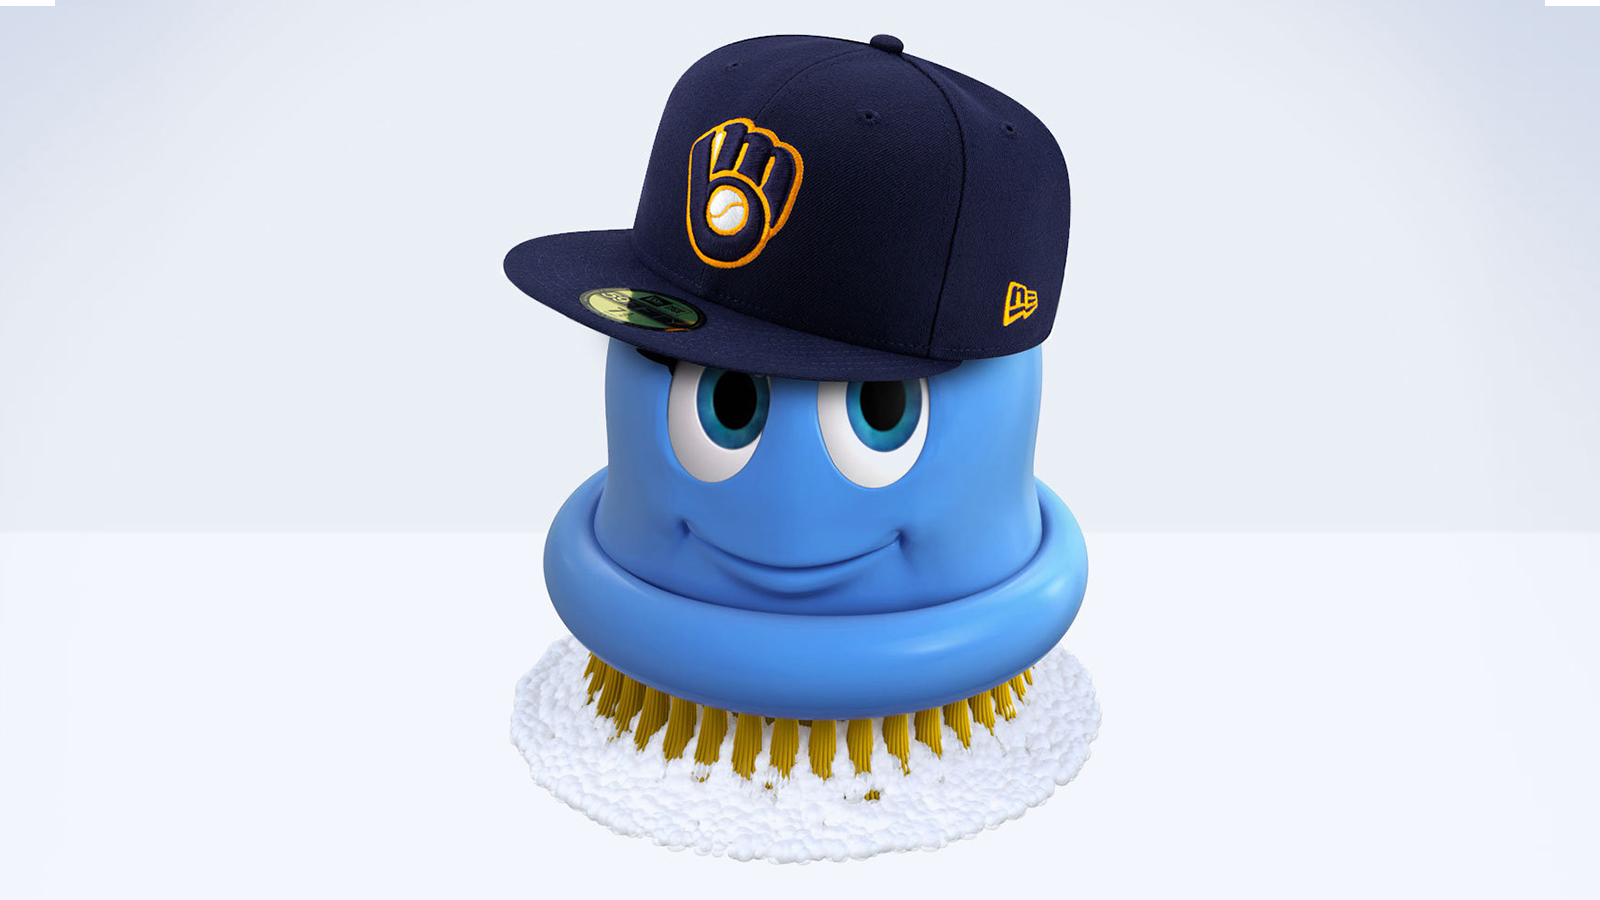 Scrubbing Bubbles Character With Brewers Hat